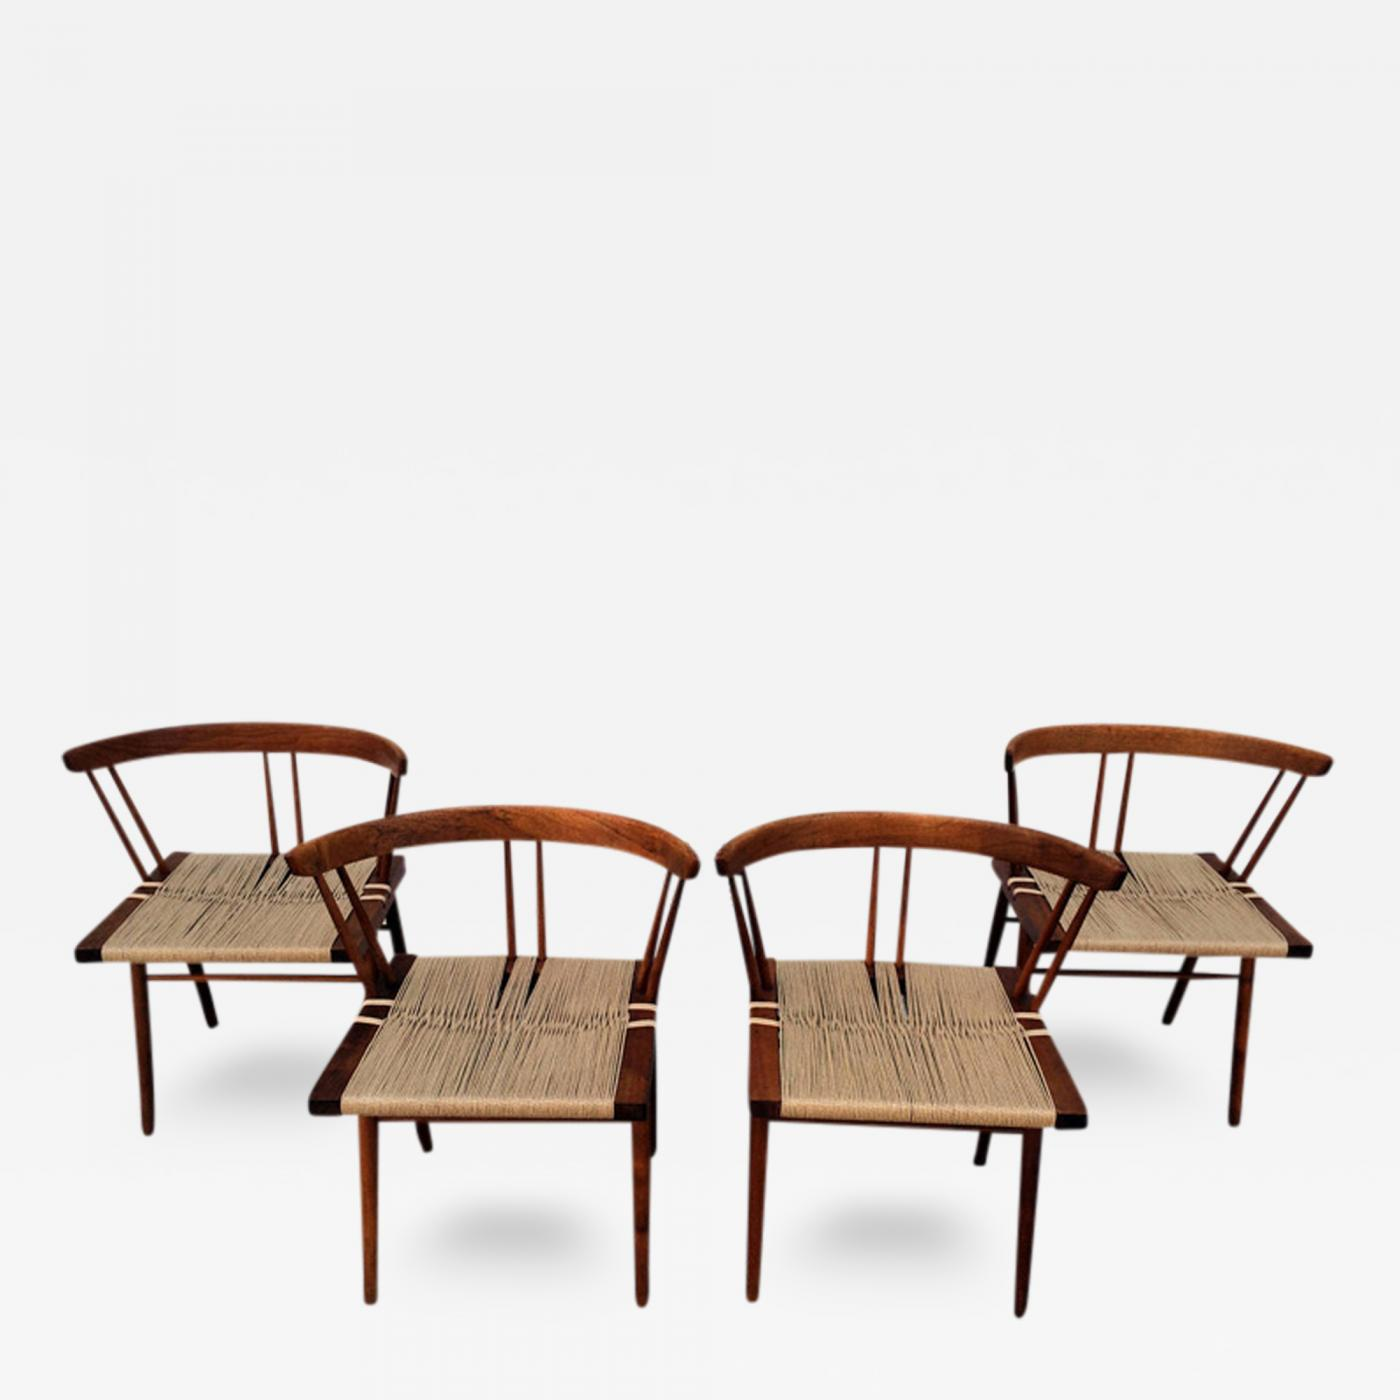 Set of four walnut and woven seat chairs